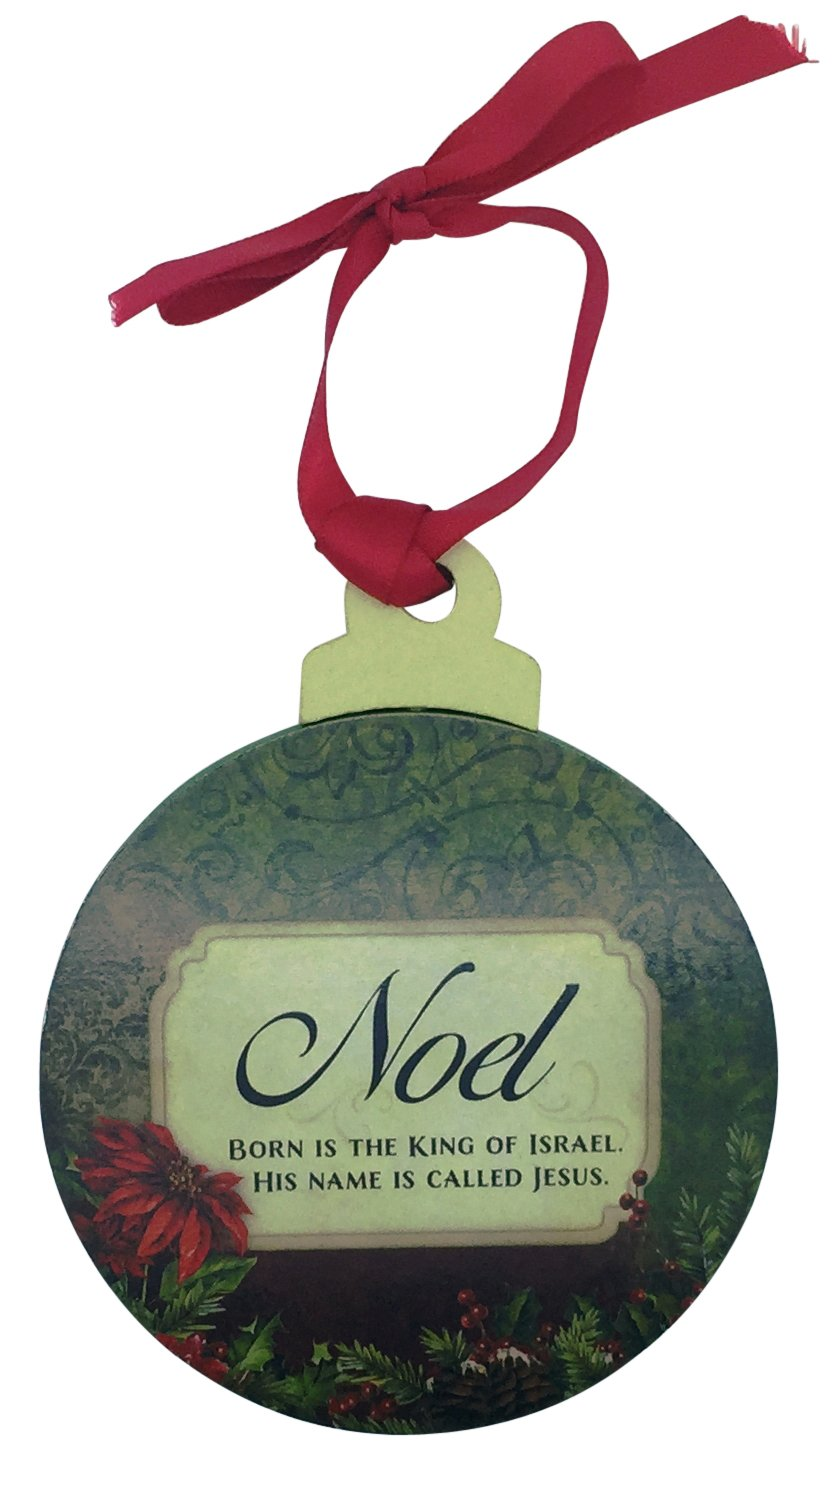 Christmas ornament in elegant round shape, crafted of wood